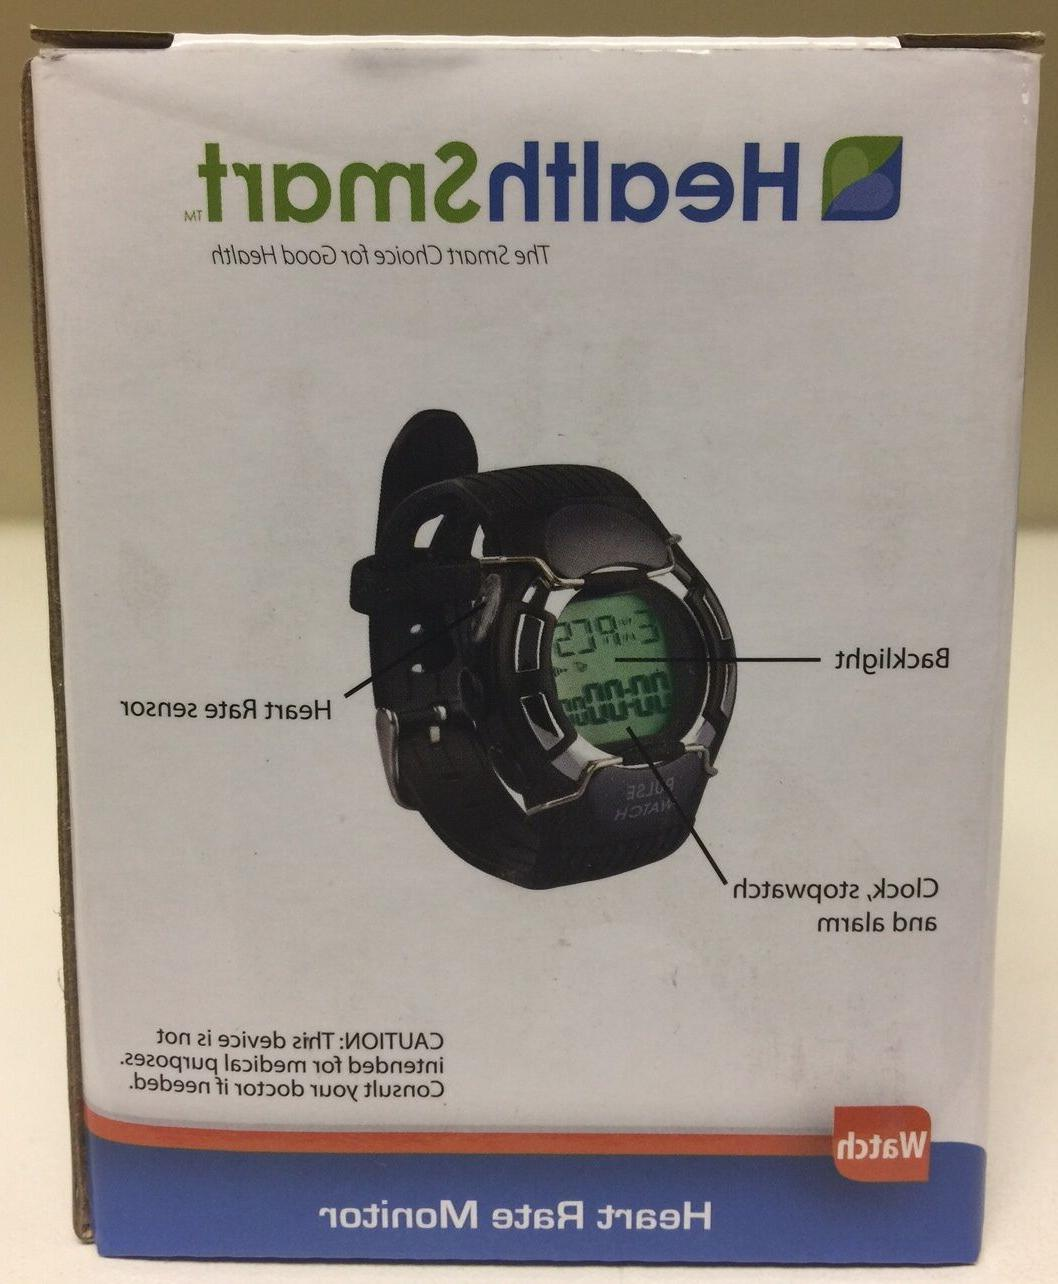 NEW: HealthSmart Rate Monitor Watch Calorie Counter: $9.95